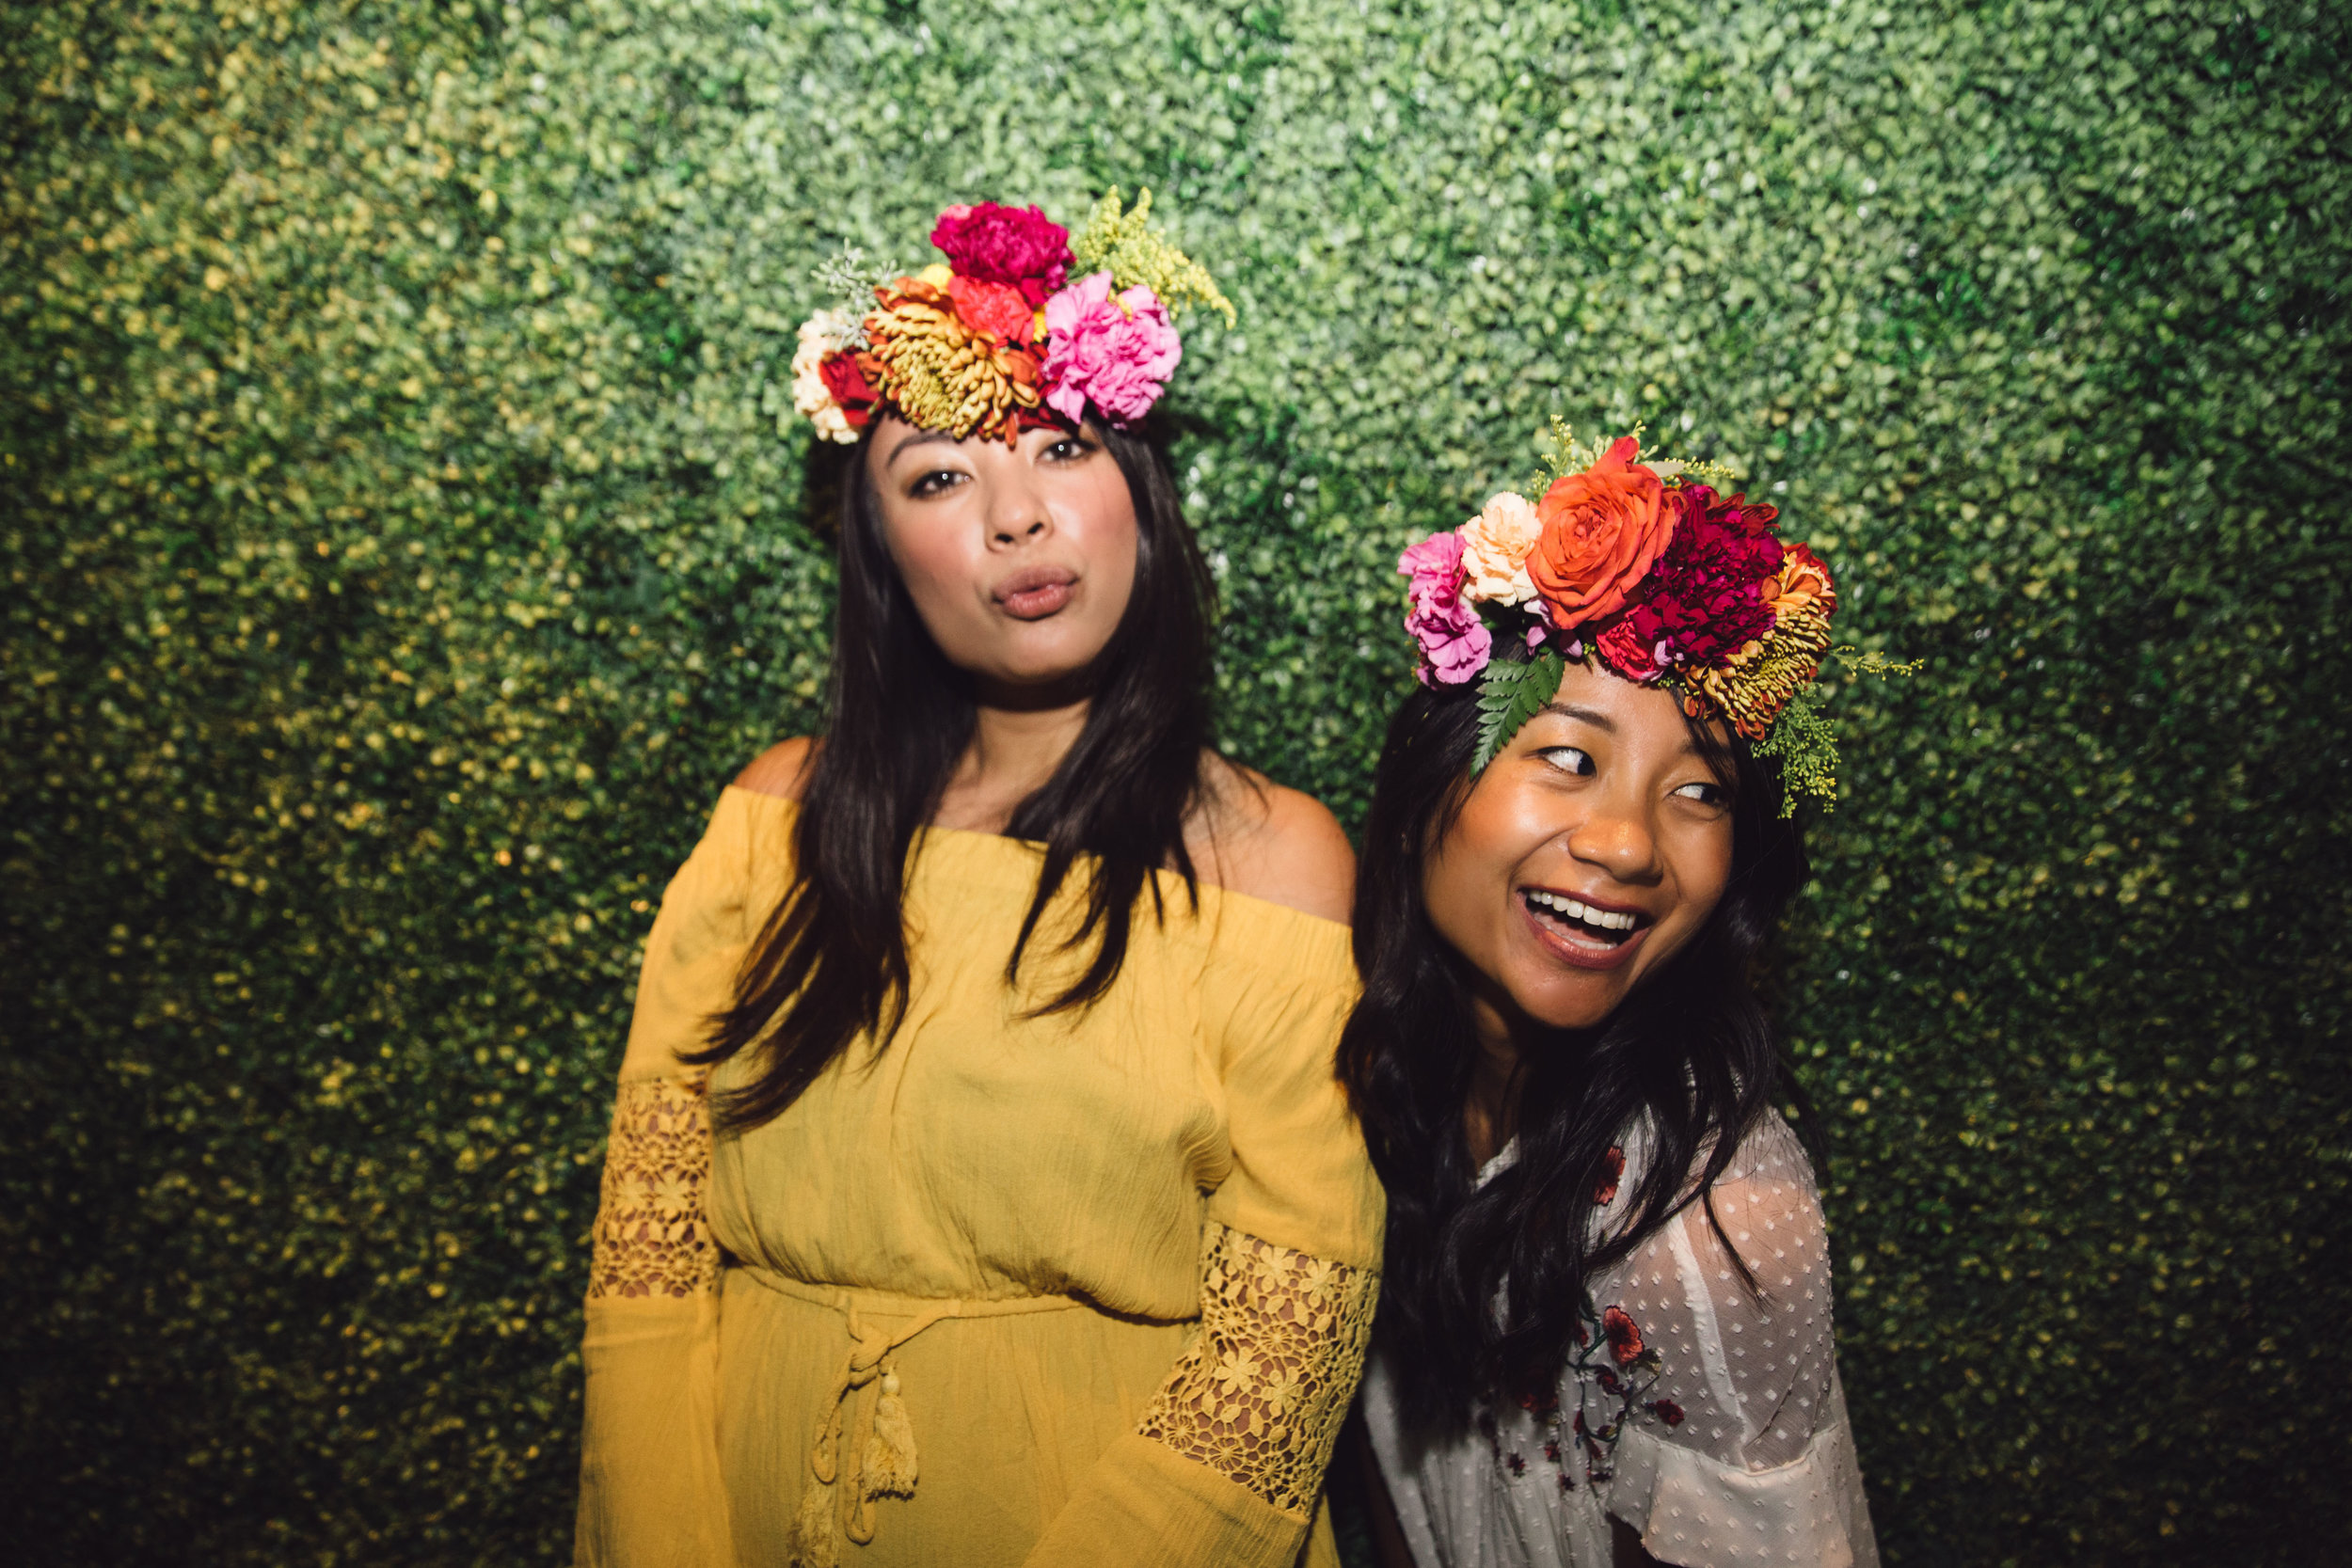 PINOT+PETALS Flower Crown Classes San Diego Southern California